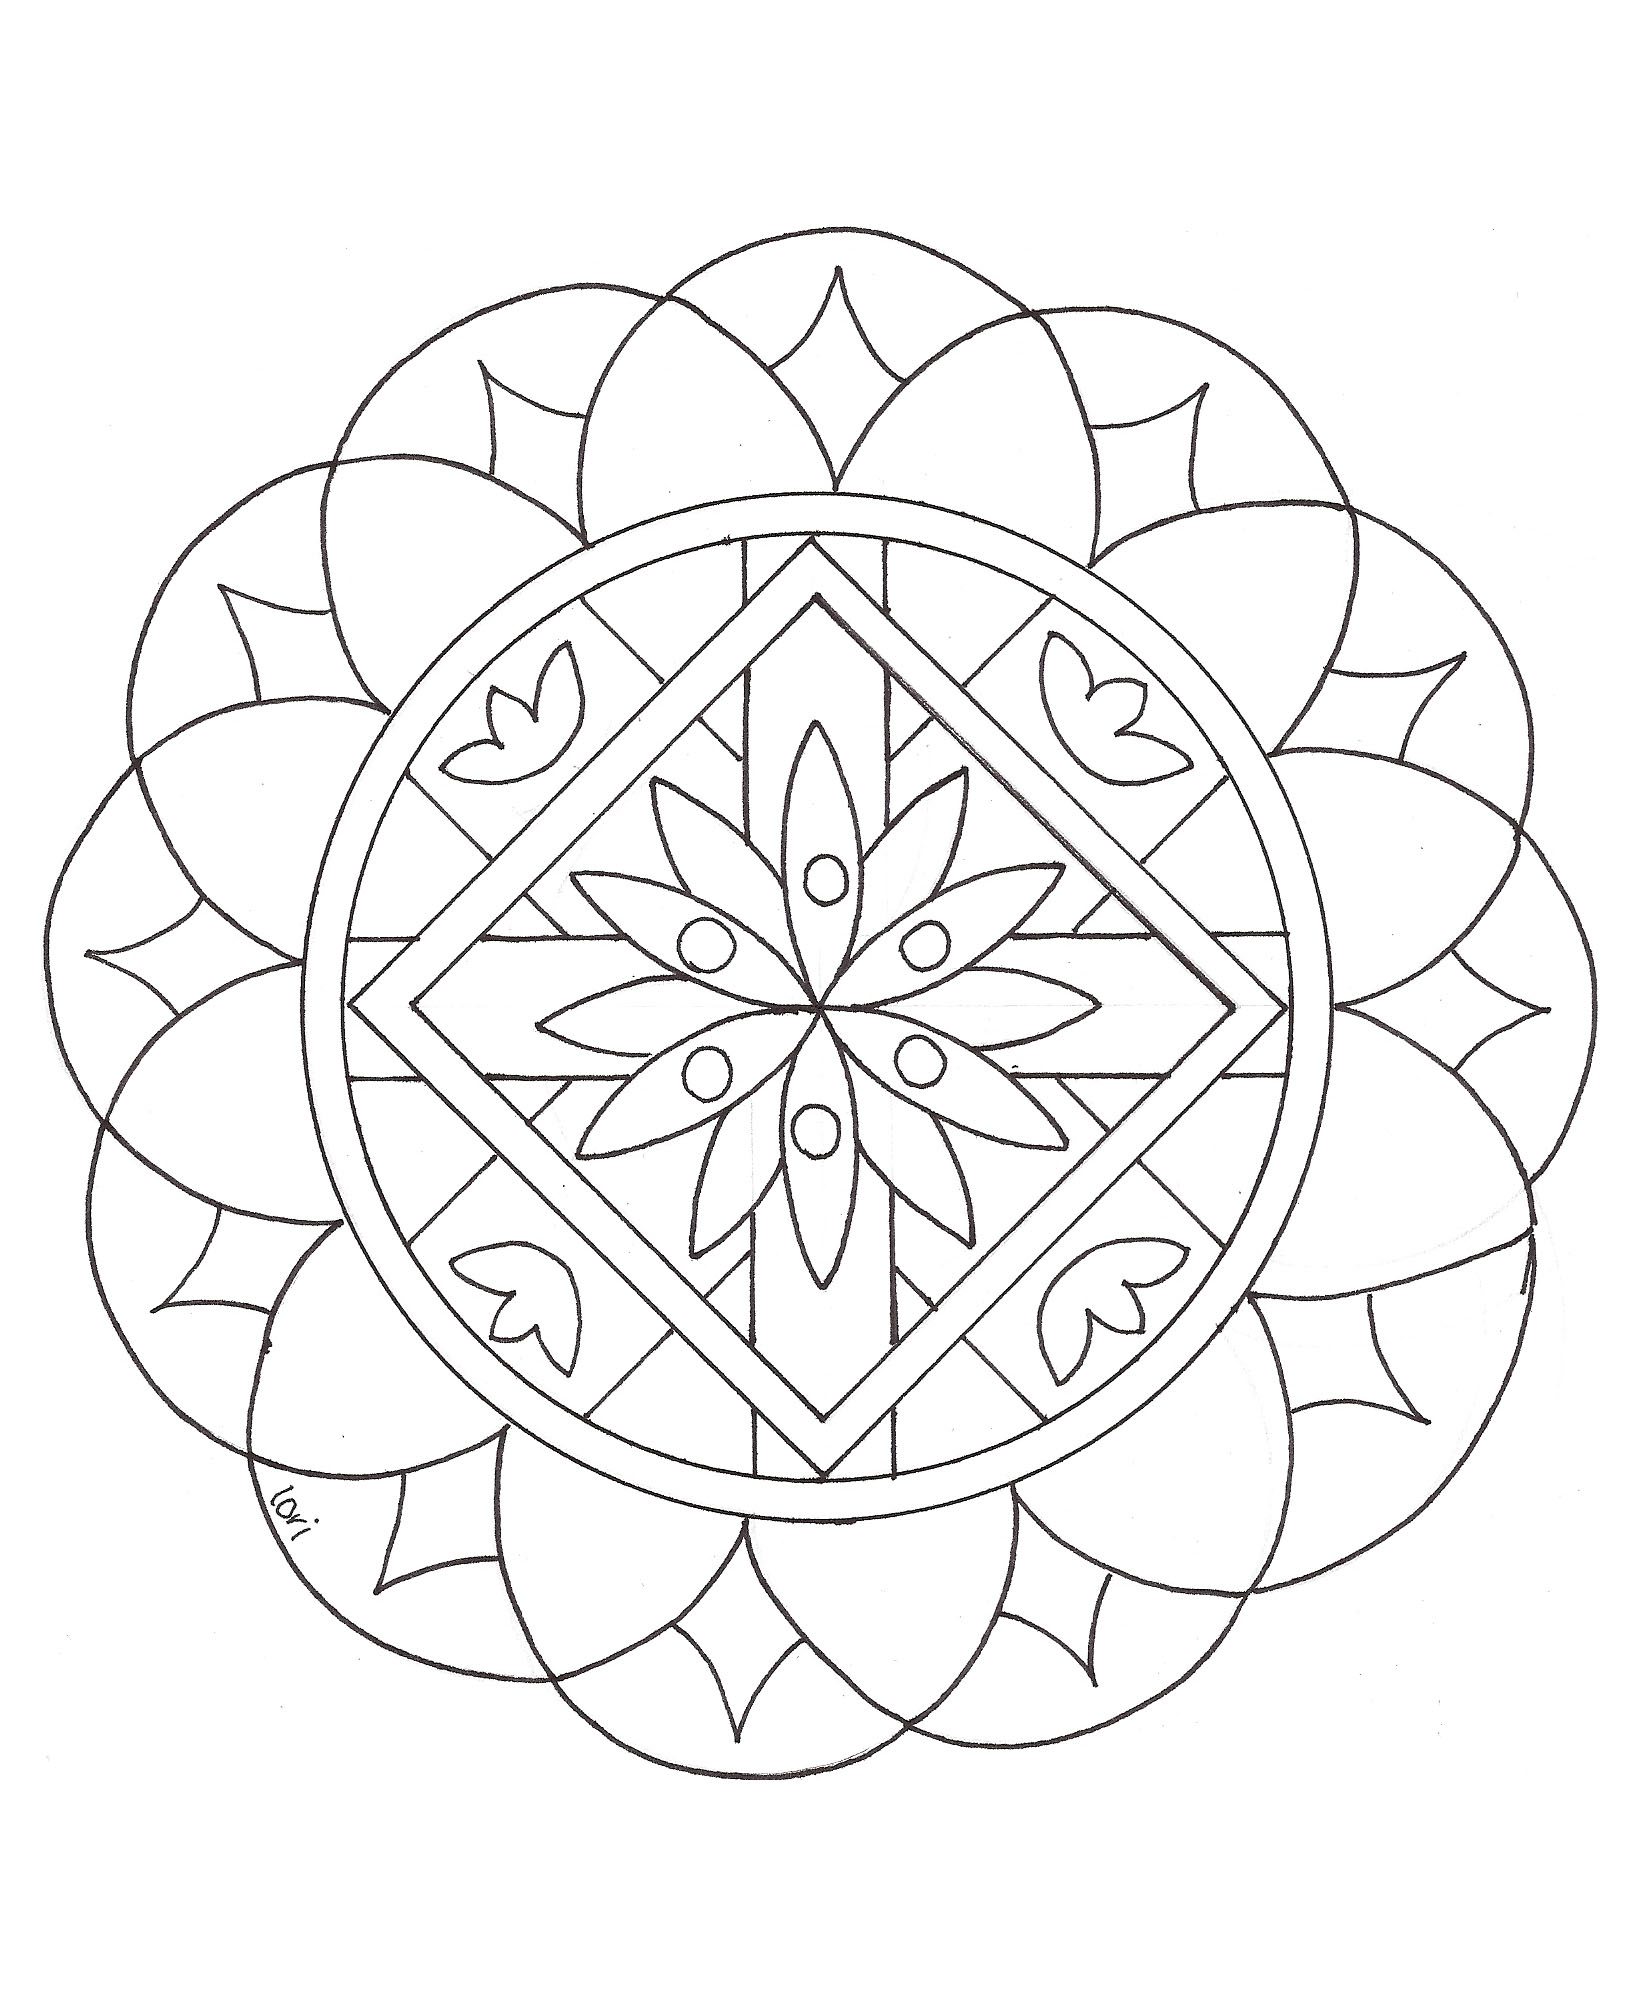 Mandalas to color for children - Mandalas Kids Coloring Pages